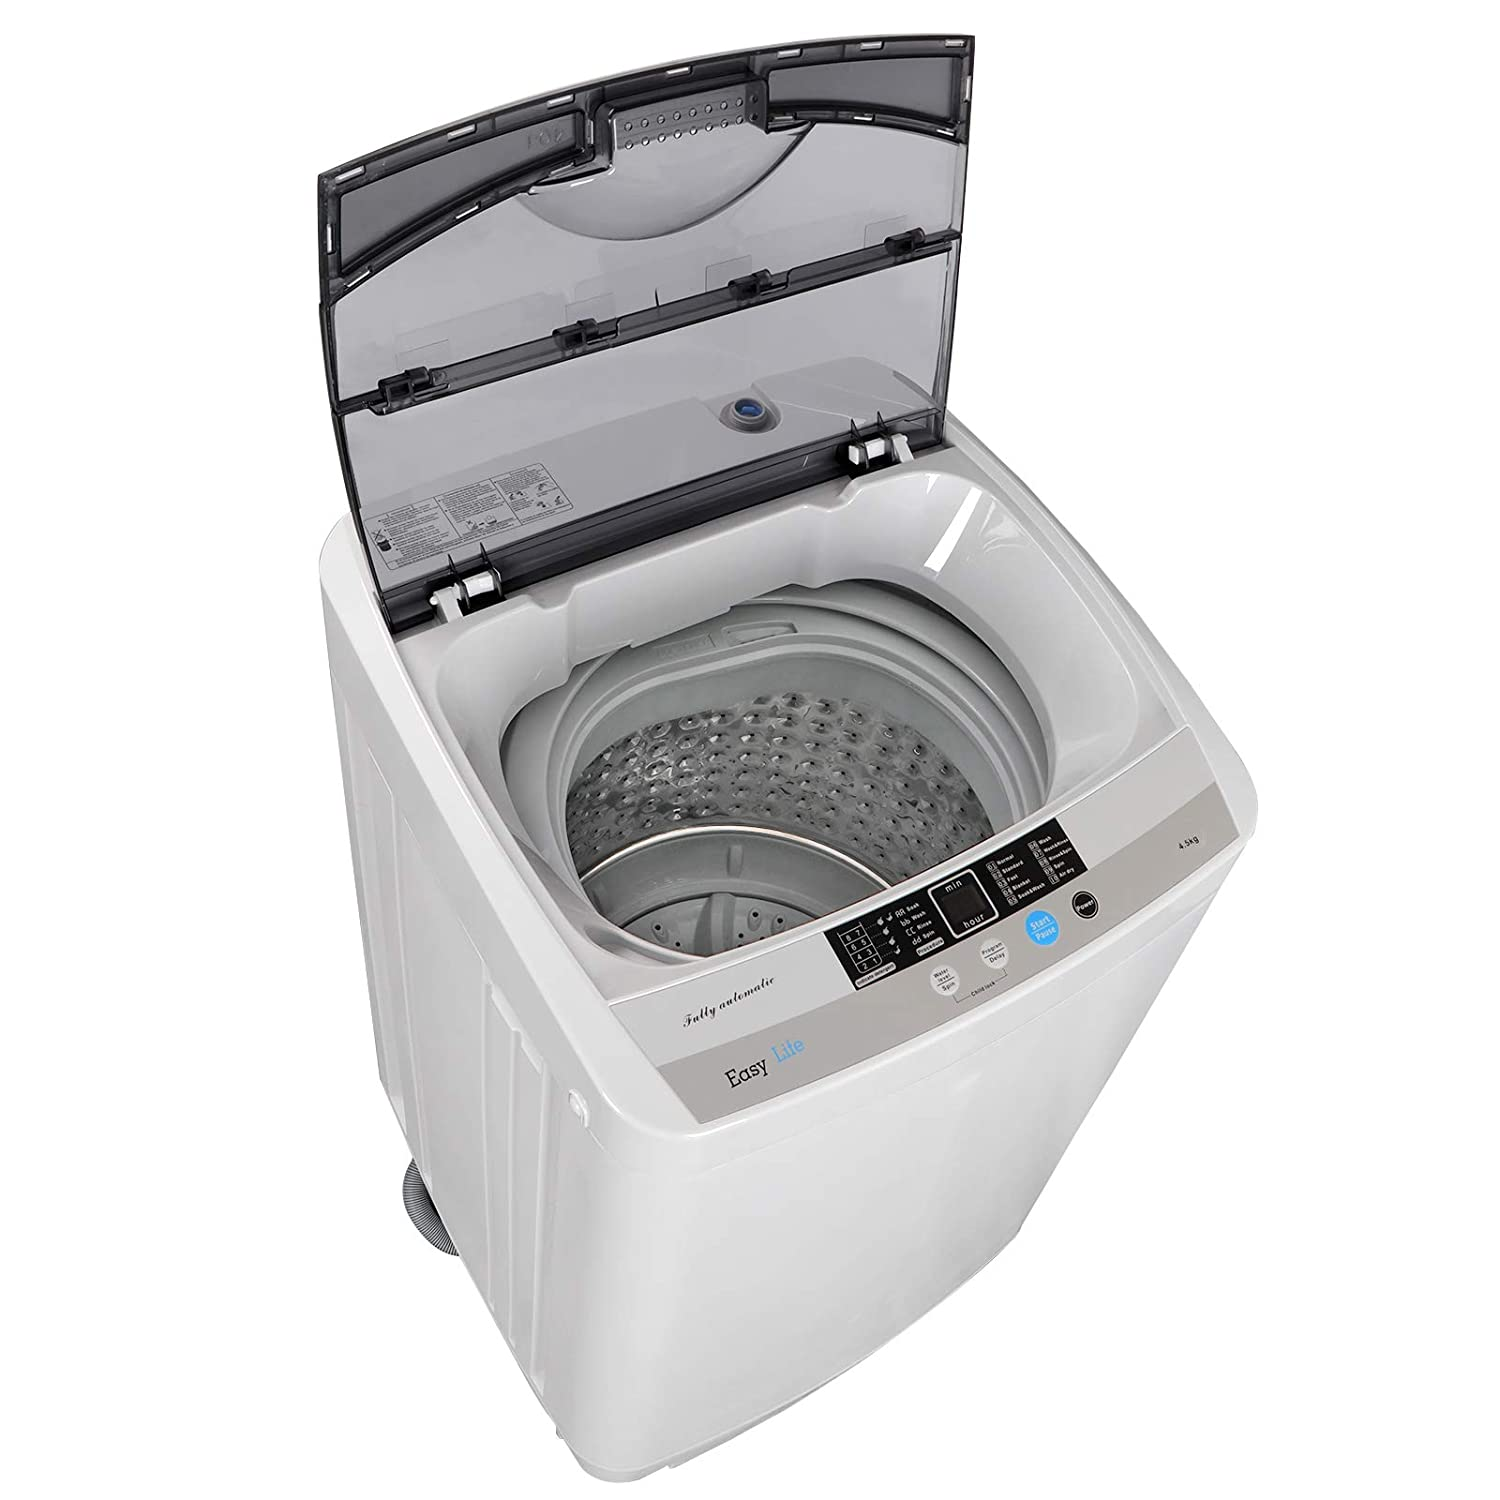 ZENY Powerful Motor Full-automatic Mini Washing Machine Laundry Washer Dryer 1.6 cu ft 8 Waterlevel w/Built-in Drain Pump